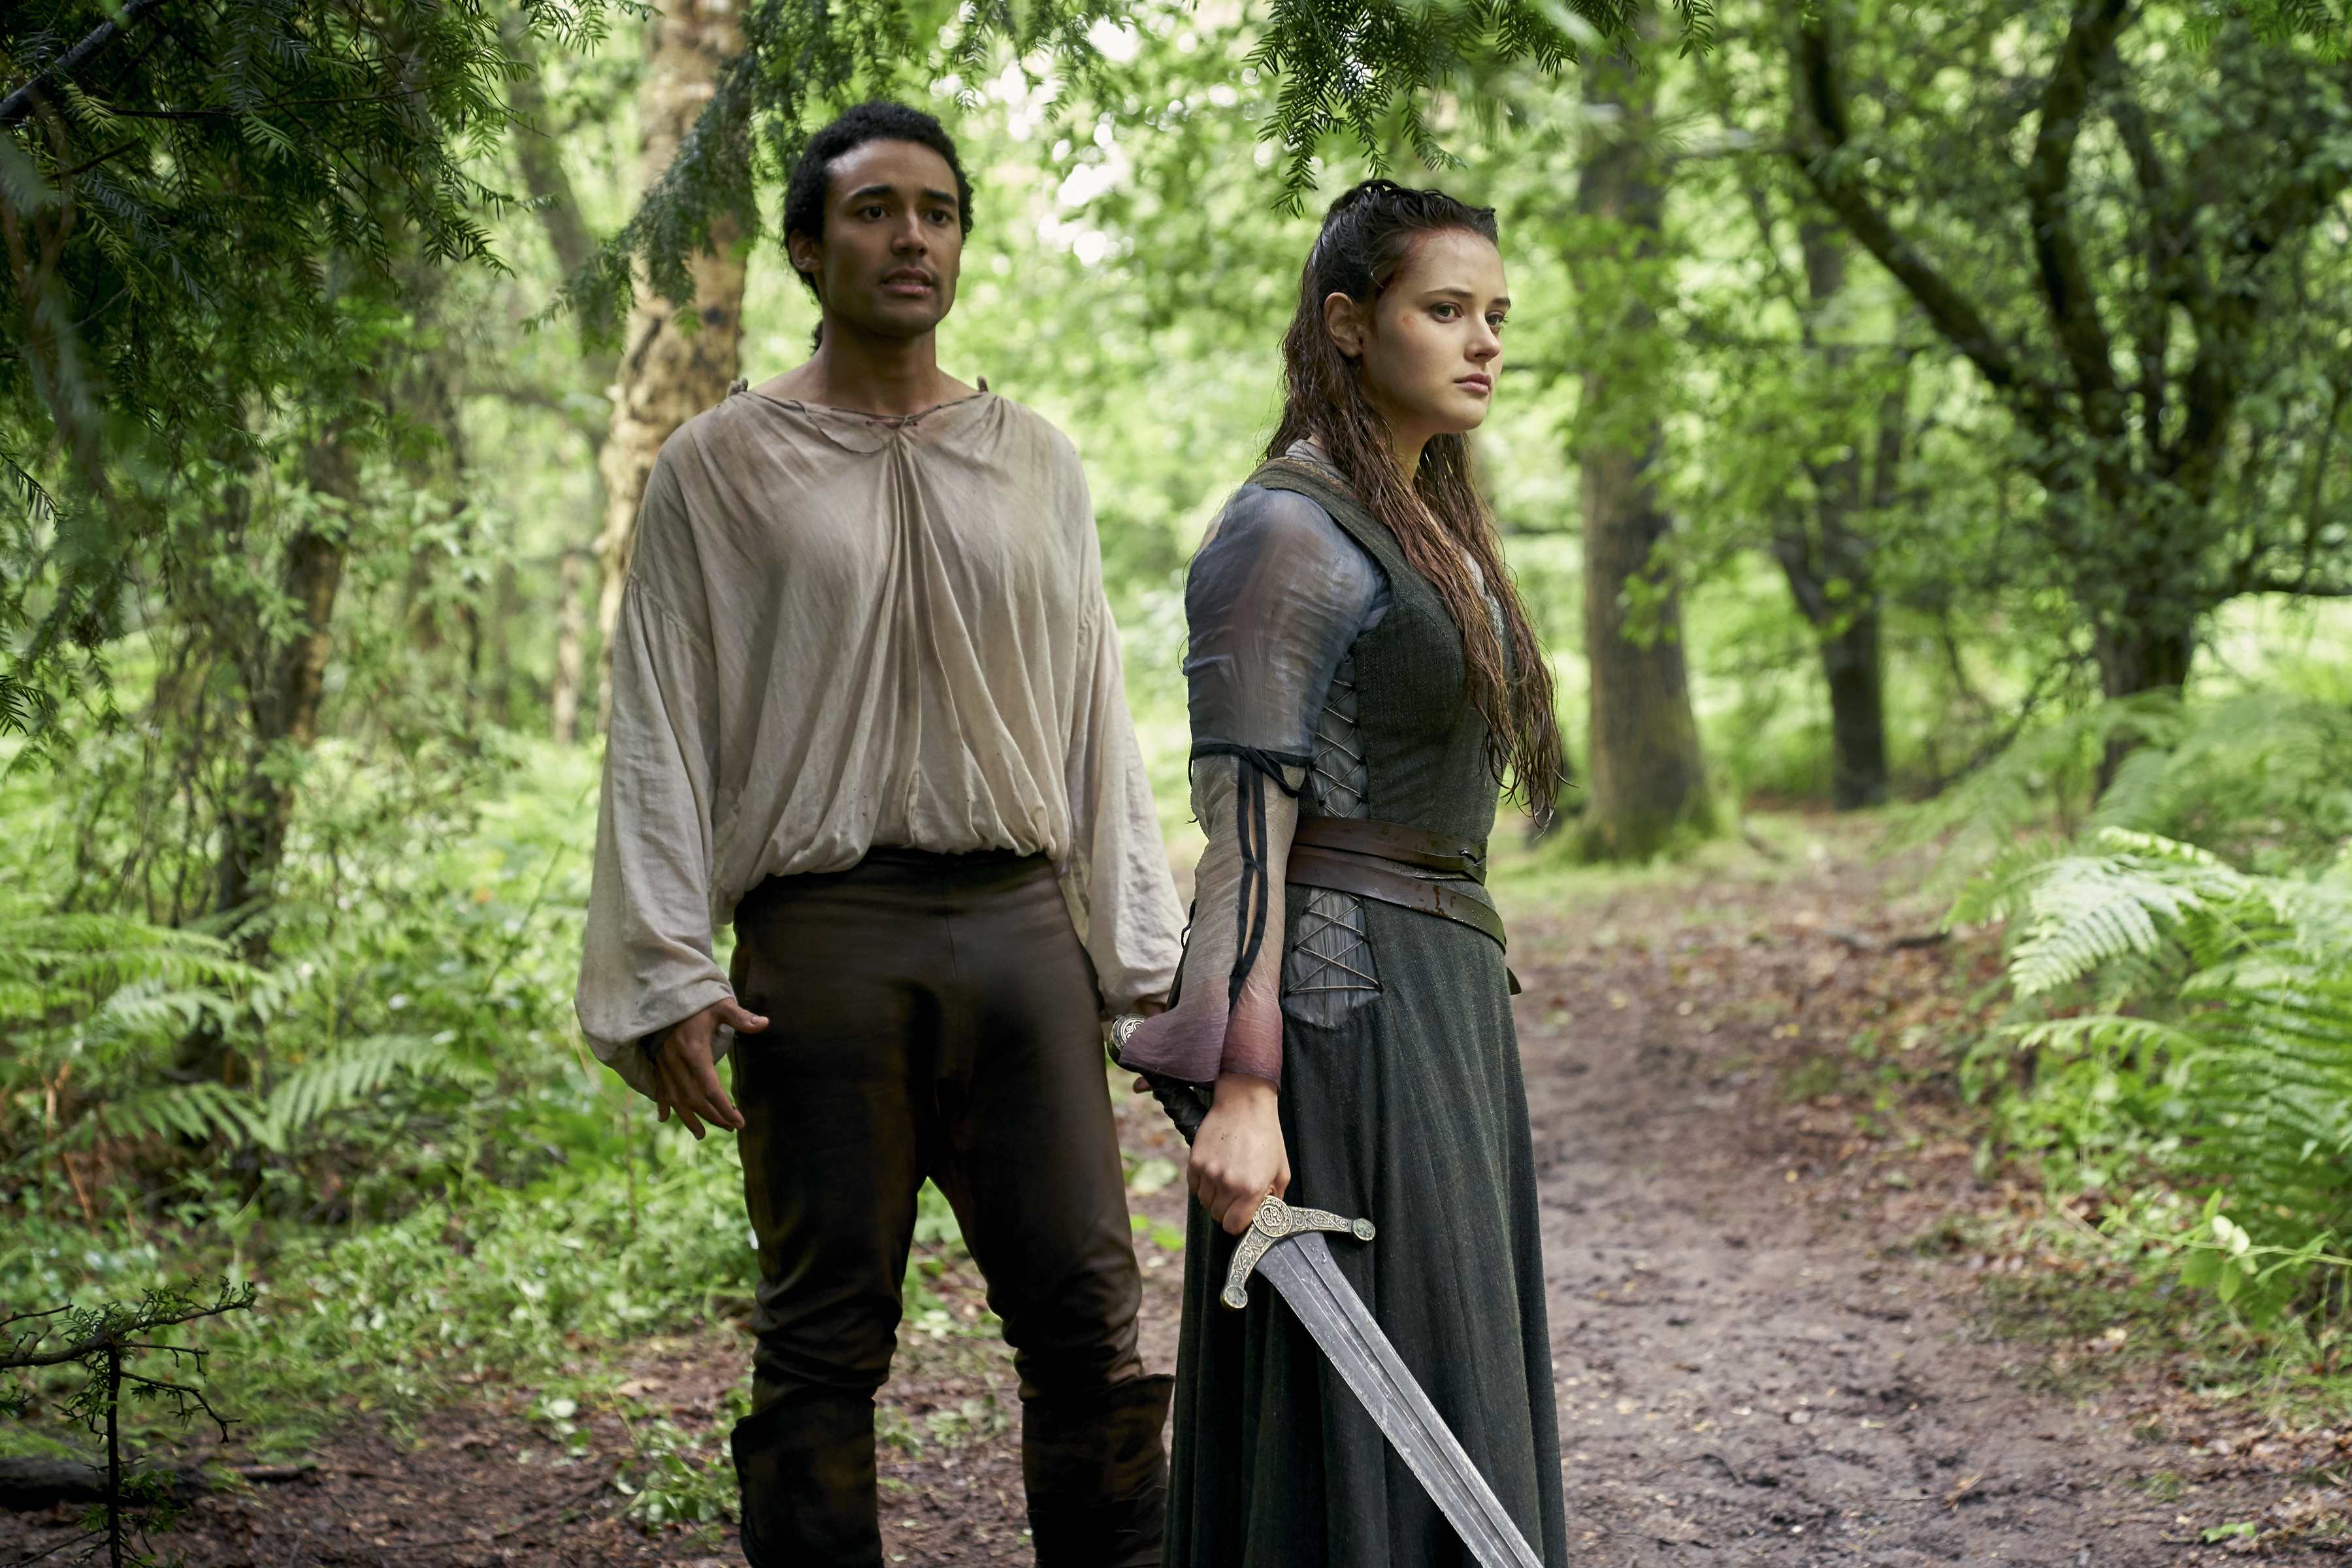 [Image description: Arthur and Nimue stand in a forest. She is holding the Sword of Power] Via Netflix